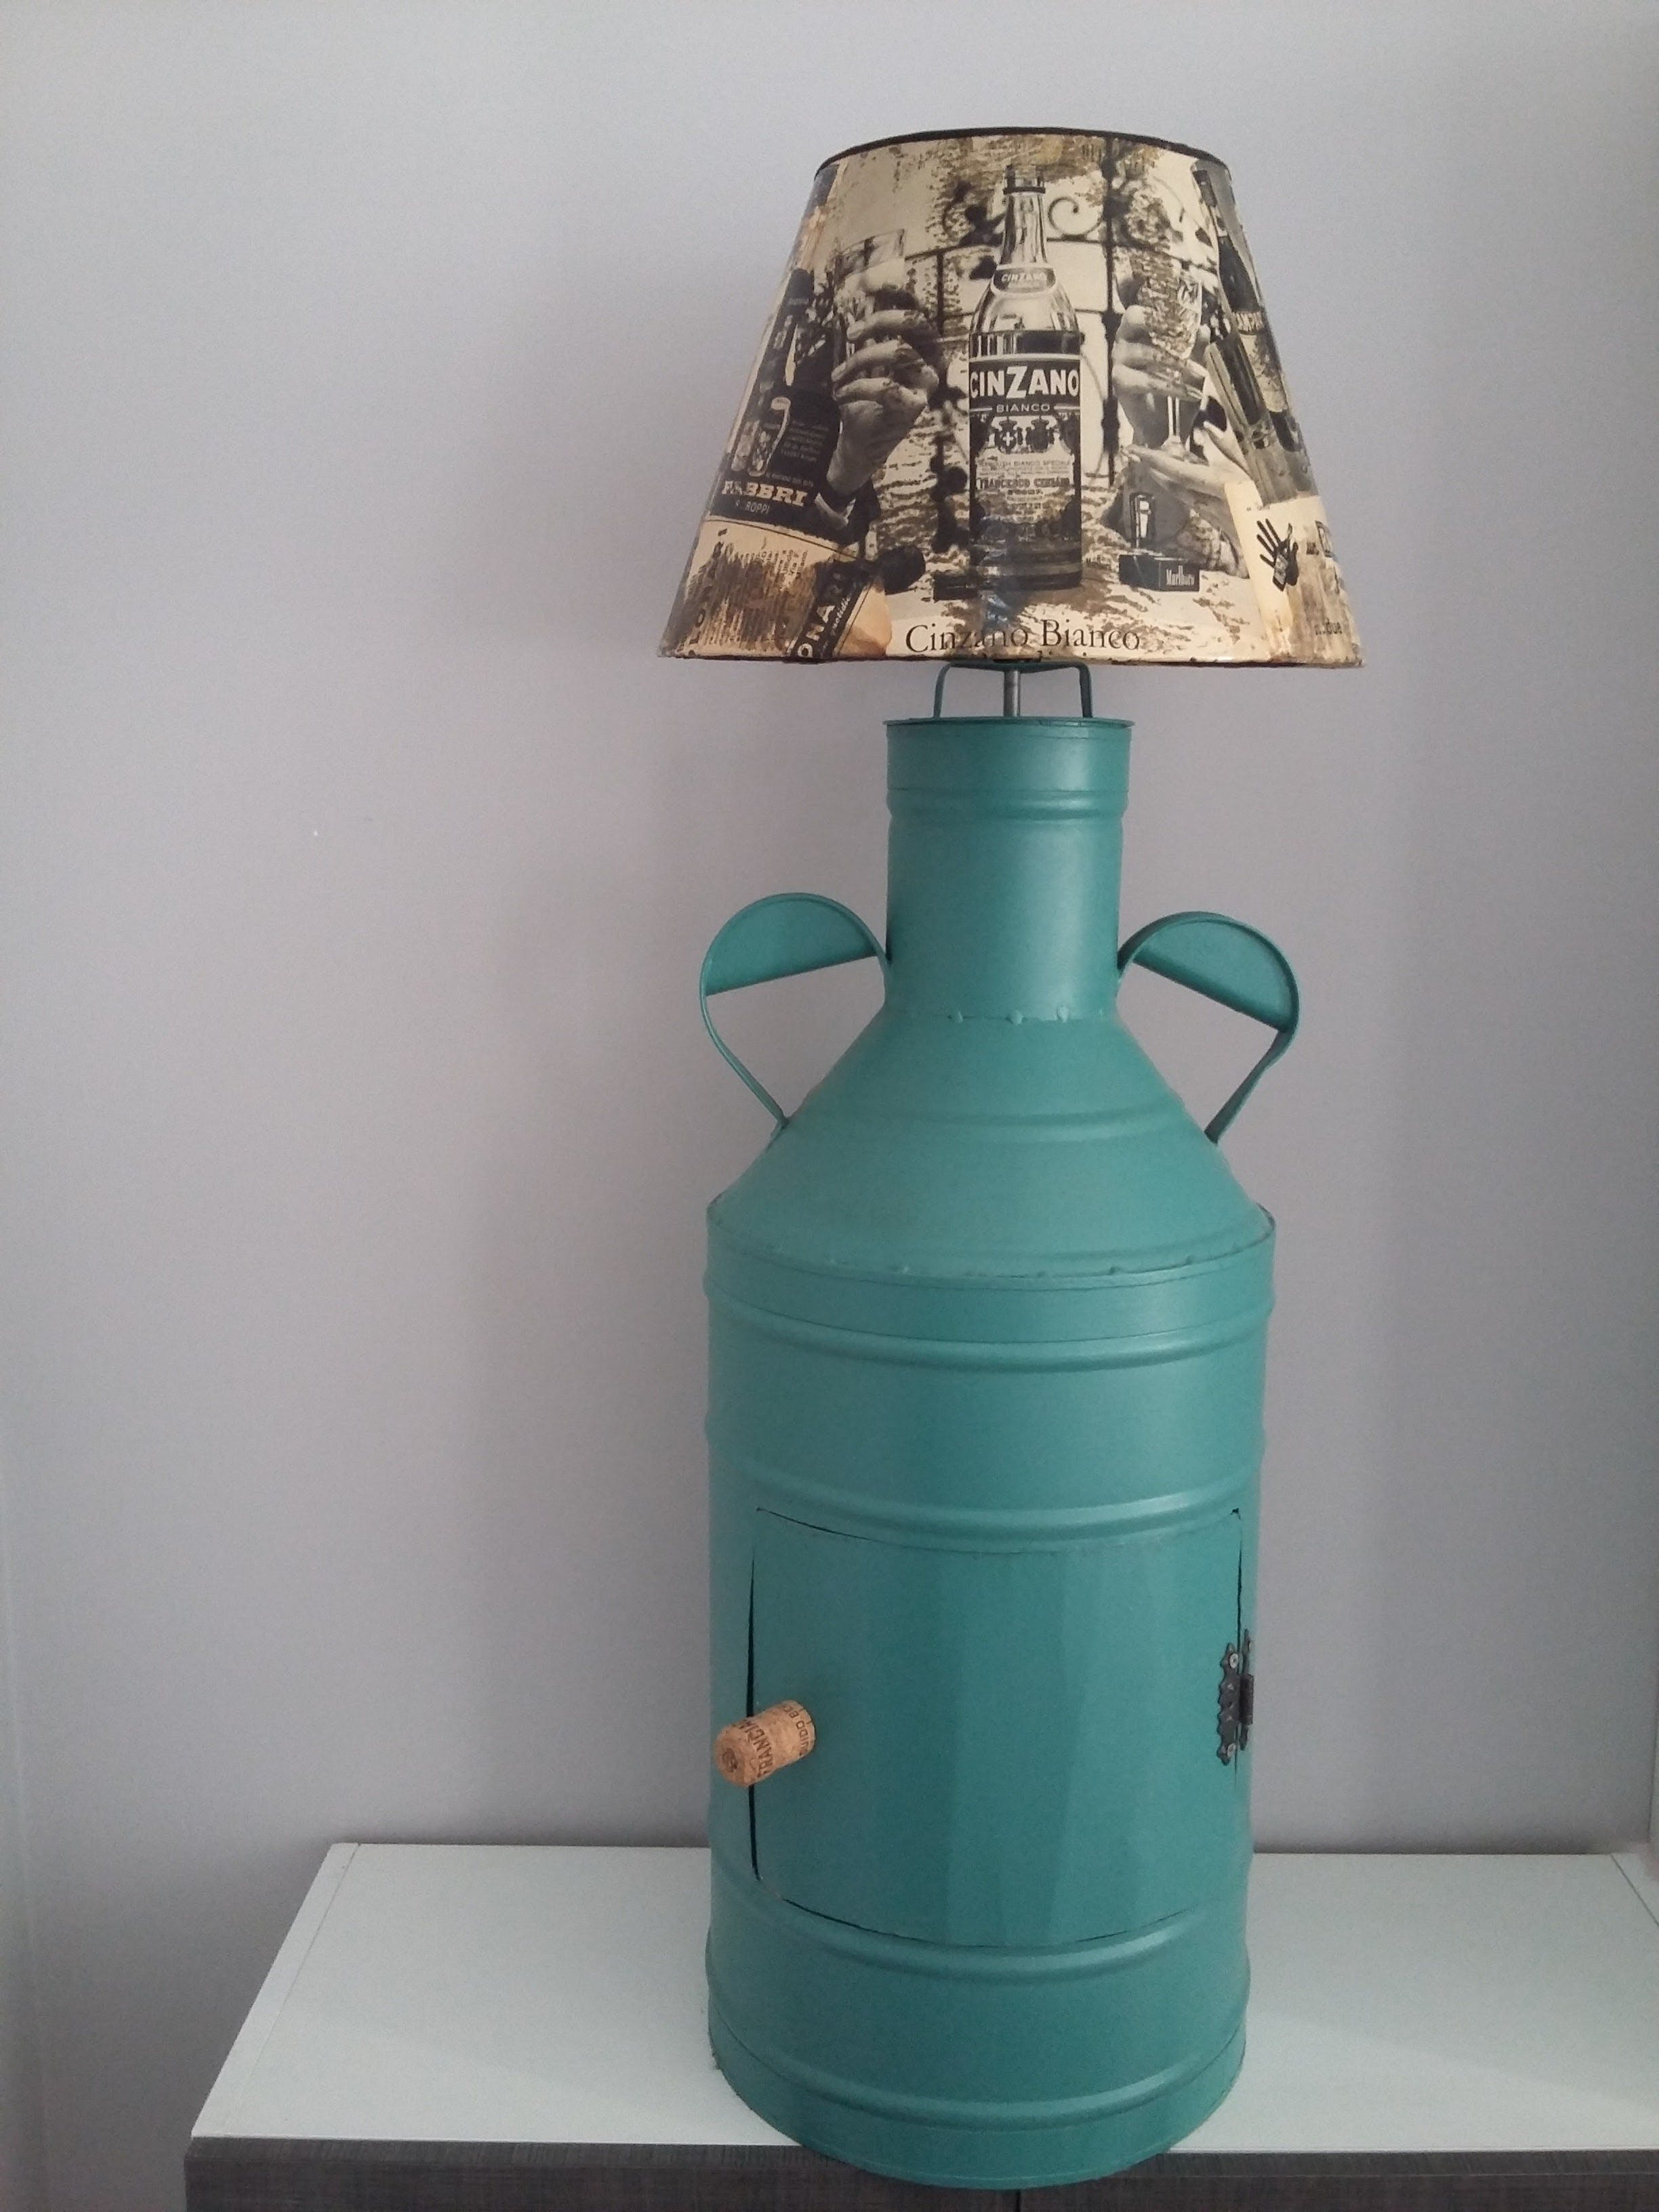 Free stock photo of antique oil container, decoupage, idea, lamp